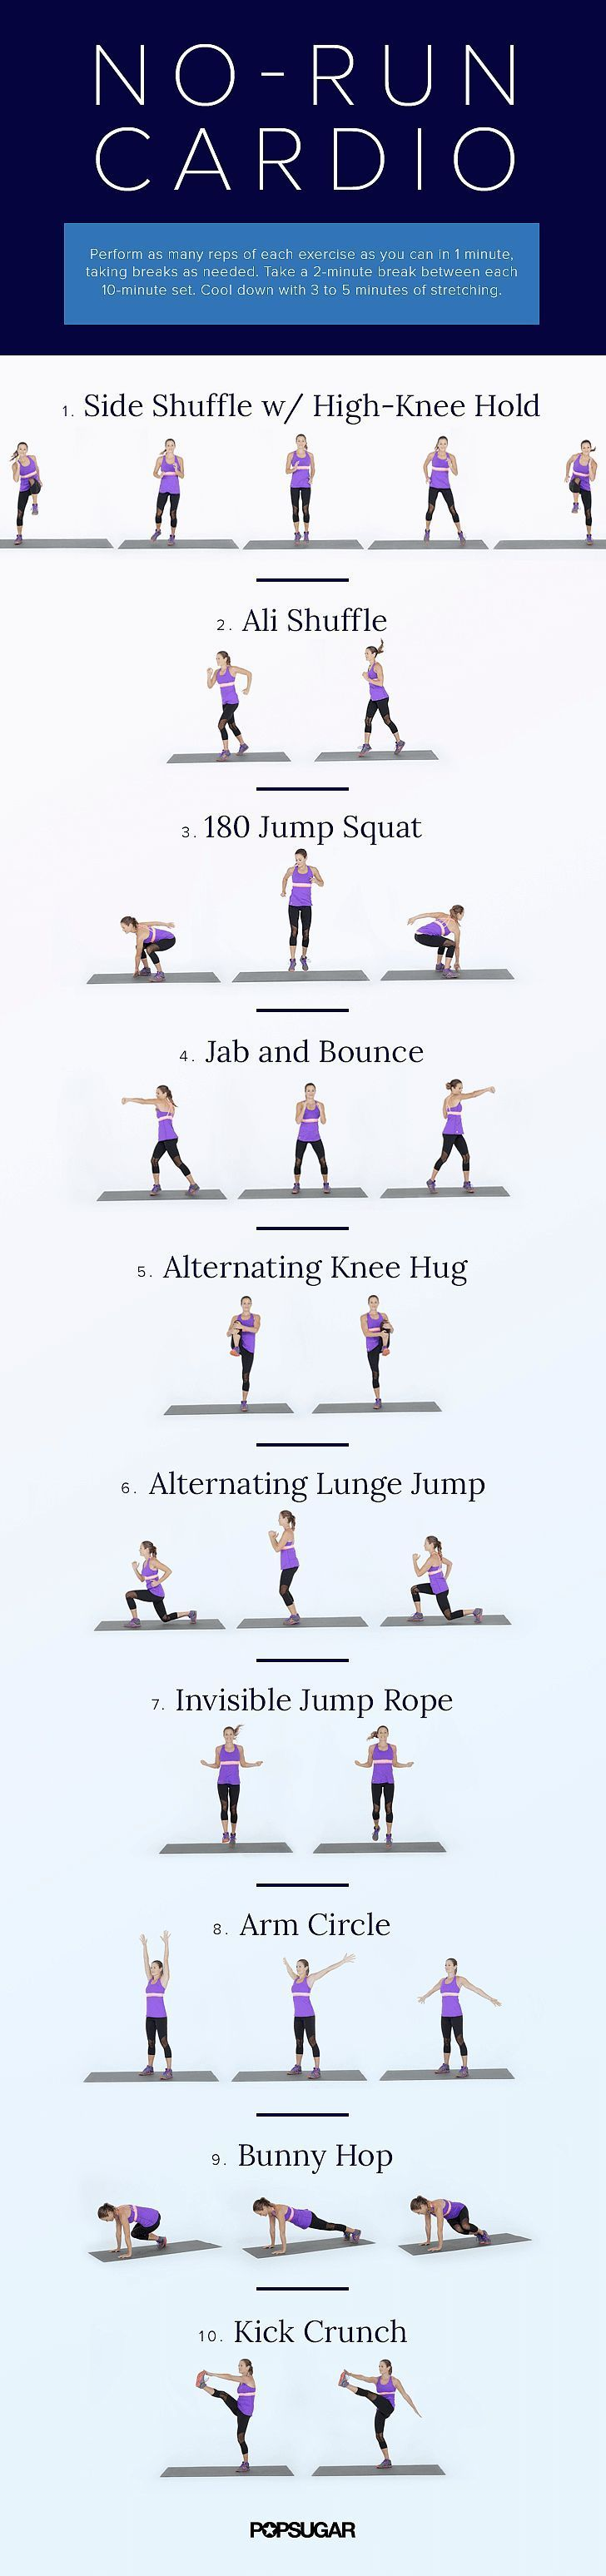 Best 100+ Burn Calories Fast images on Pinterest | Exercise routines ...